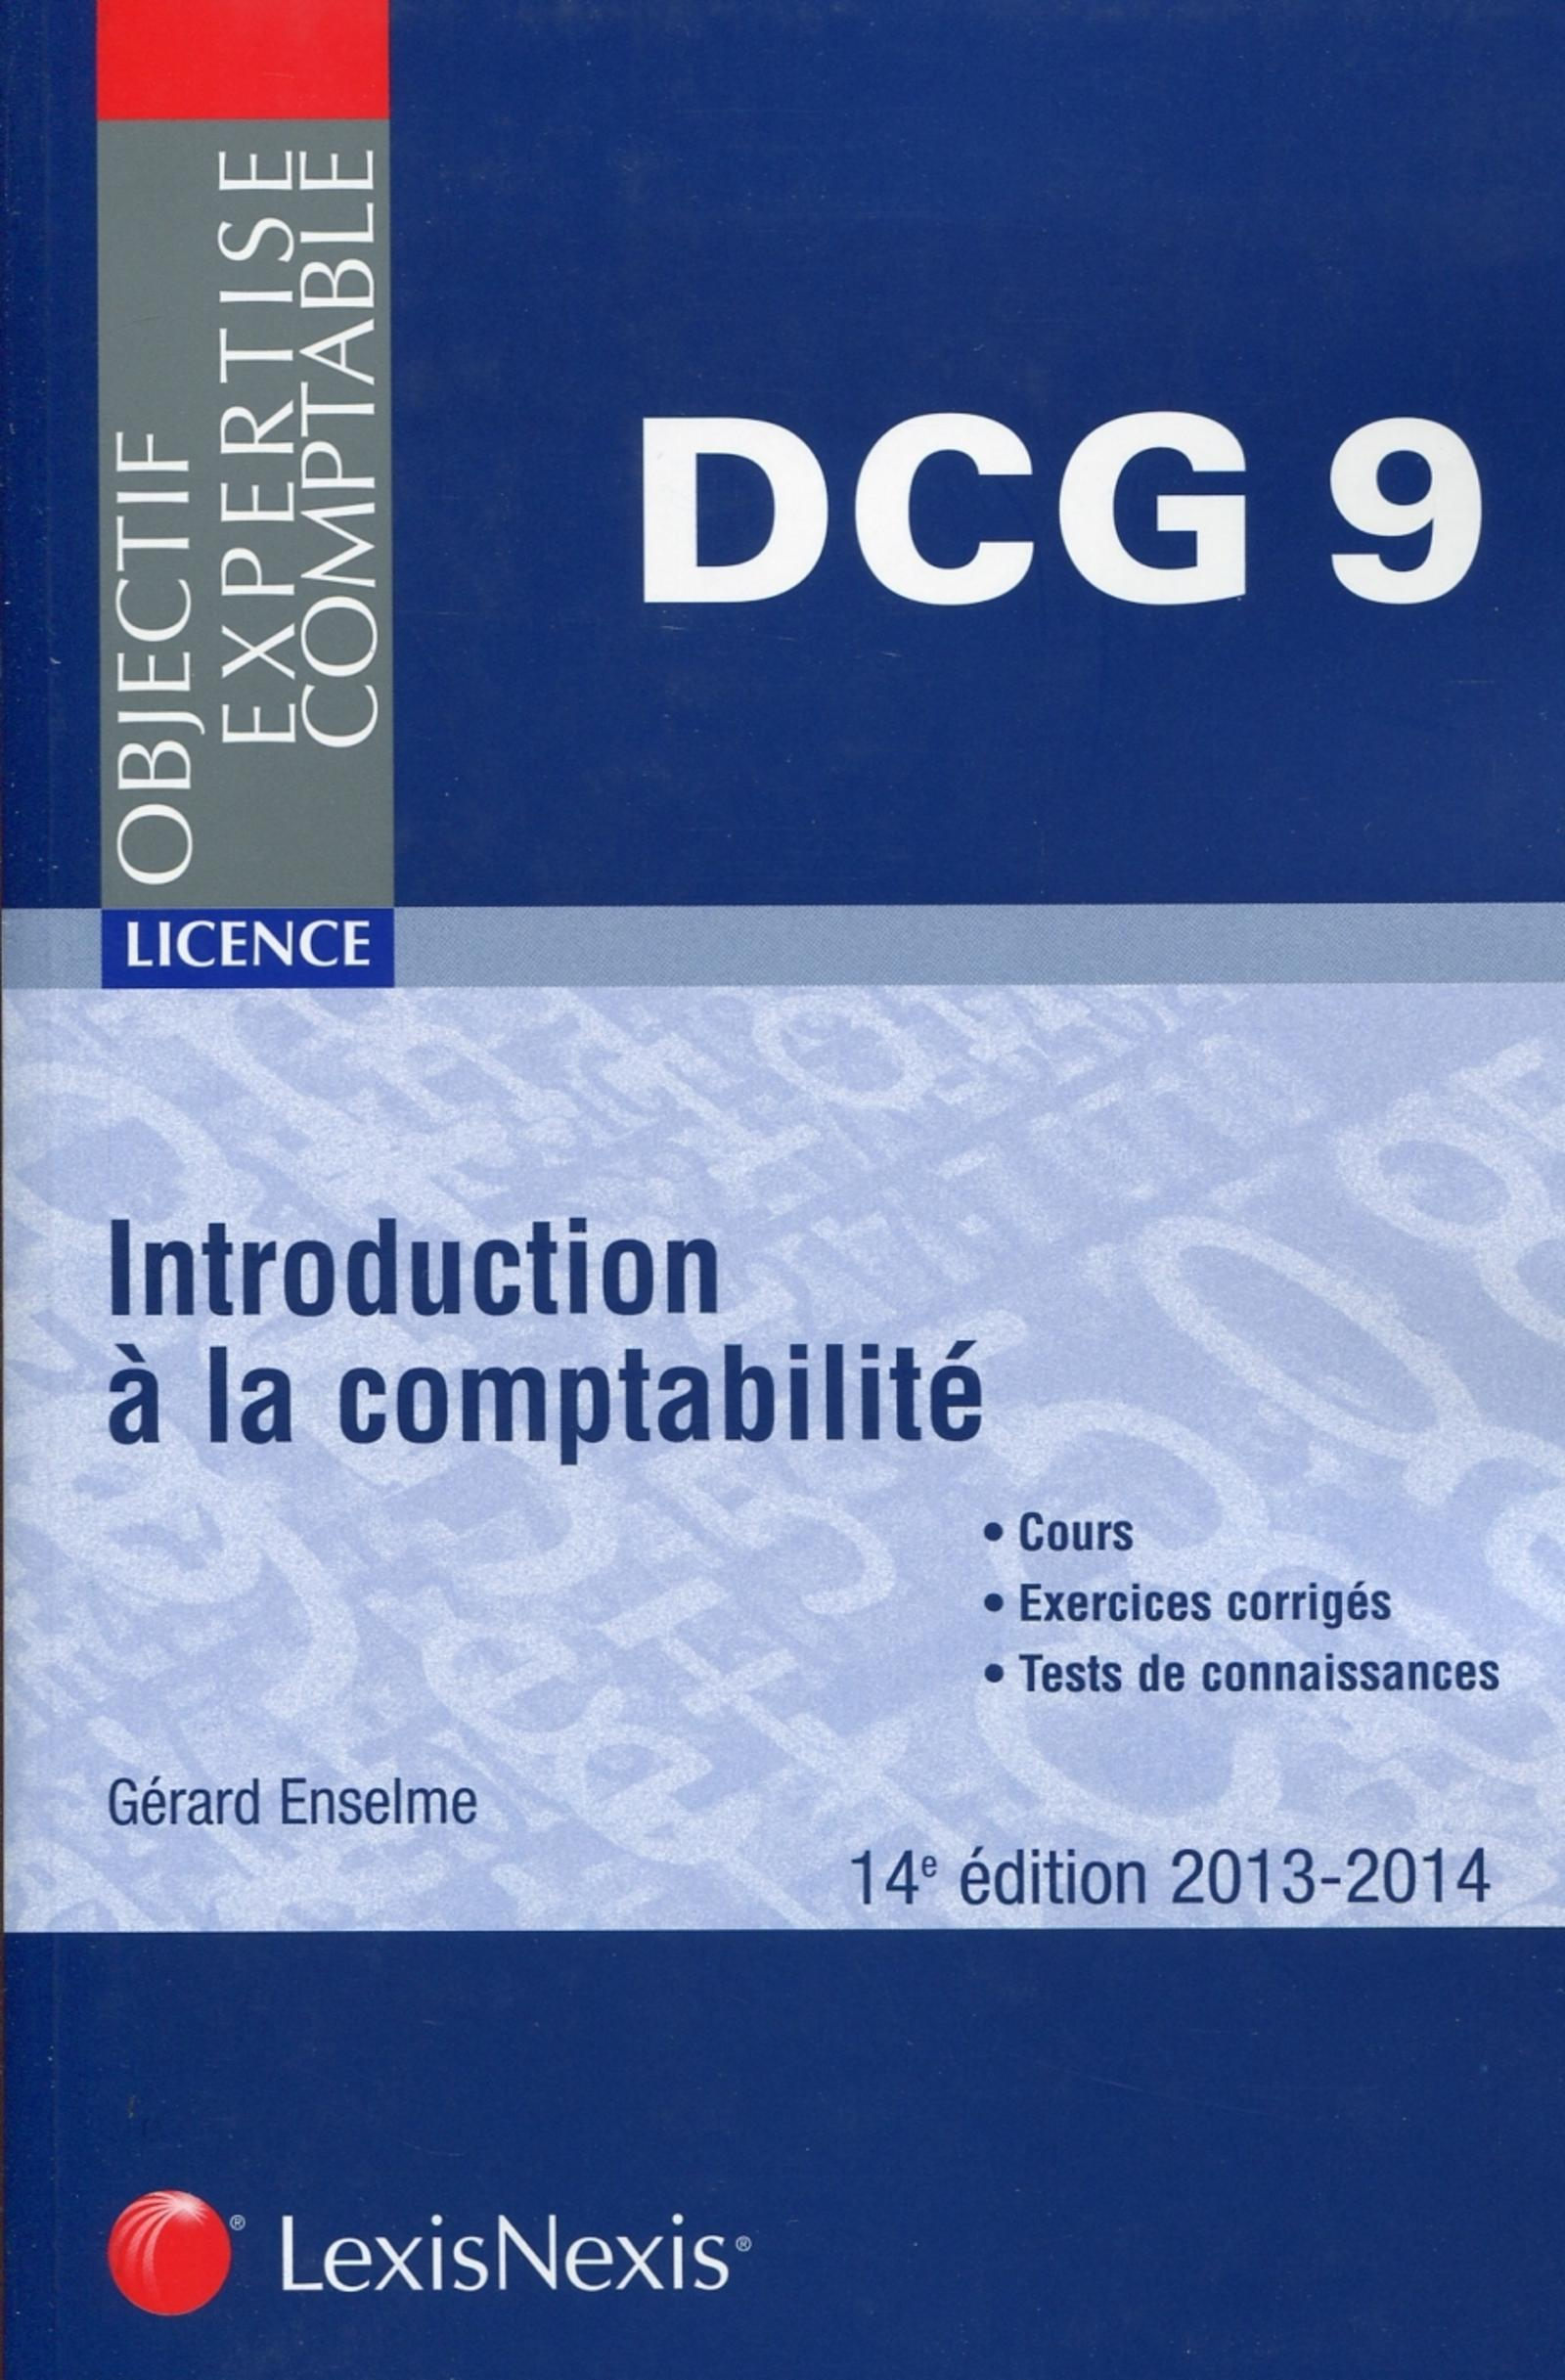 INTRODUCTION A LA COMPTABILITE 2013-2014. LICENCE-DCG 9. COURS, EXERCICES CORRIG